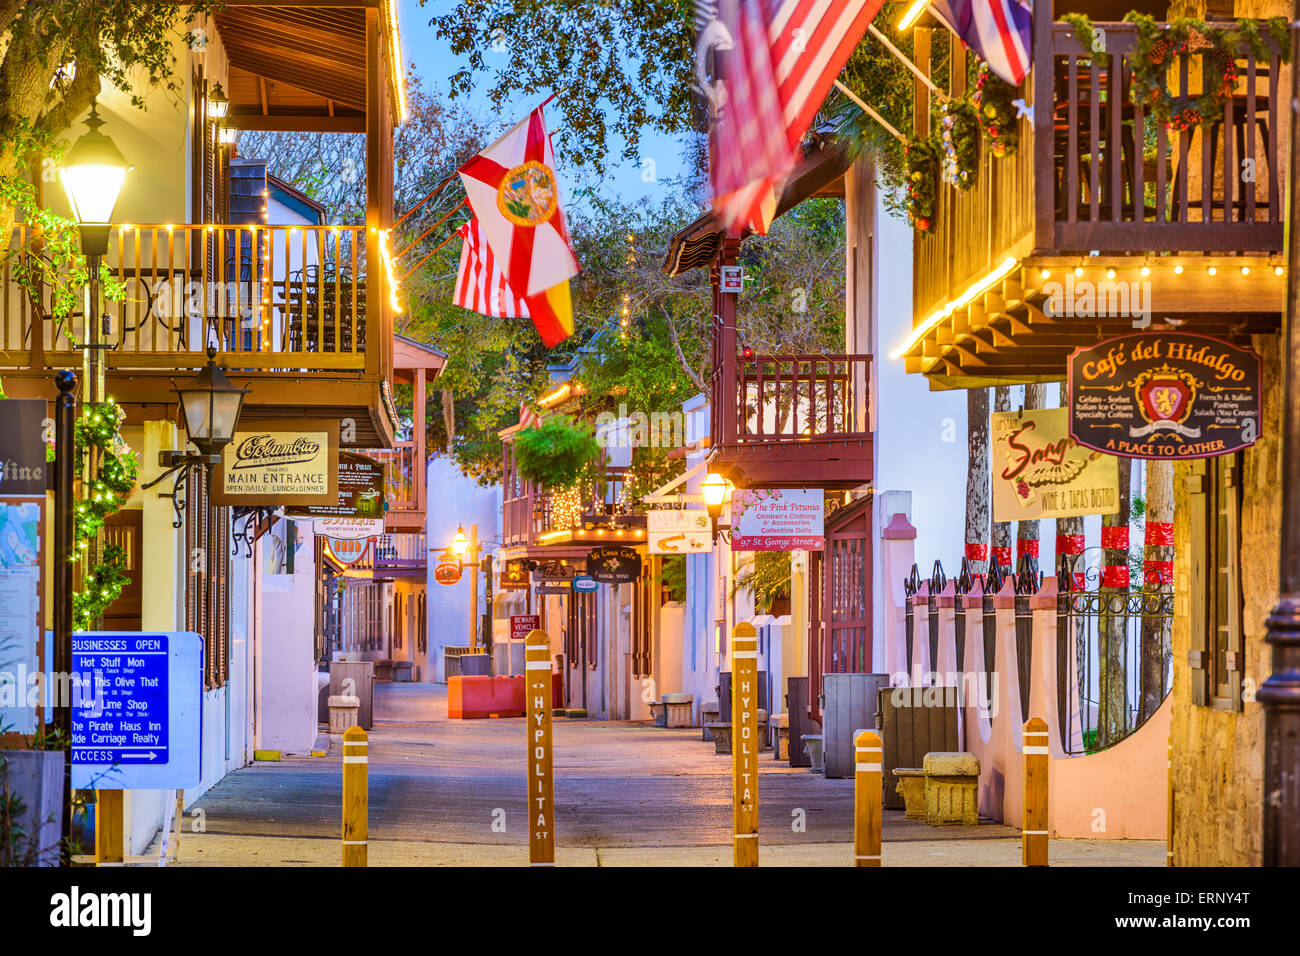 Shops and inns line St. George. Once the main street, it is still considered the heart of the city. - Stock Image